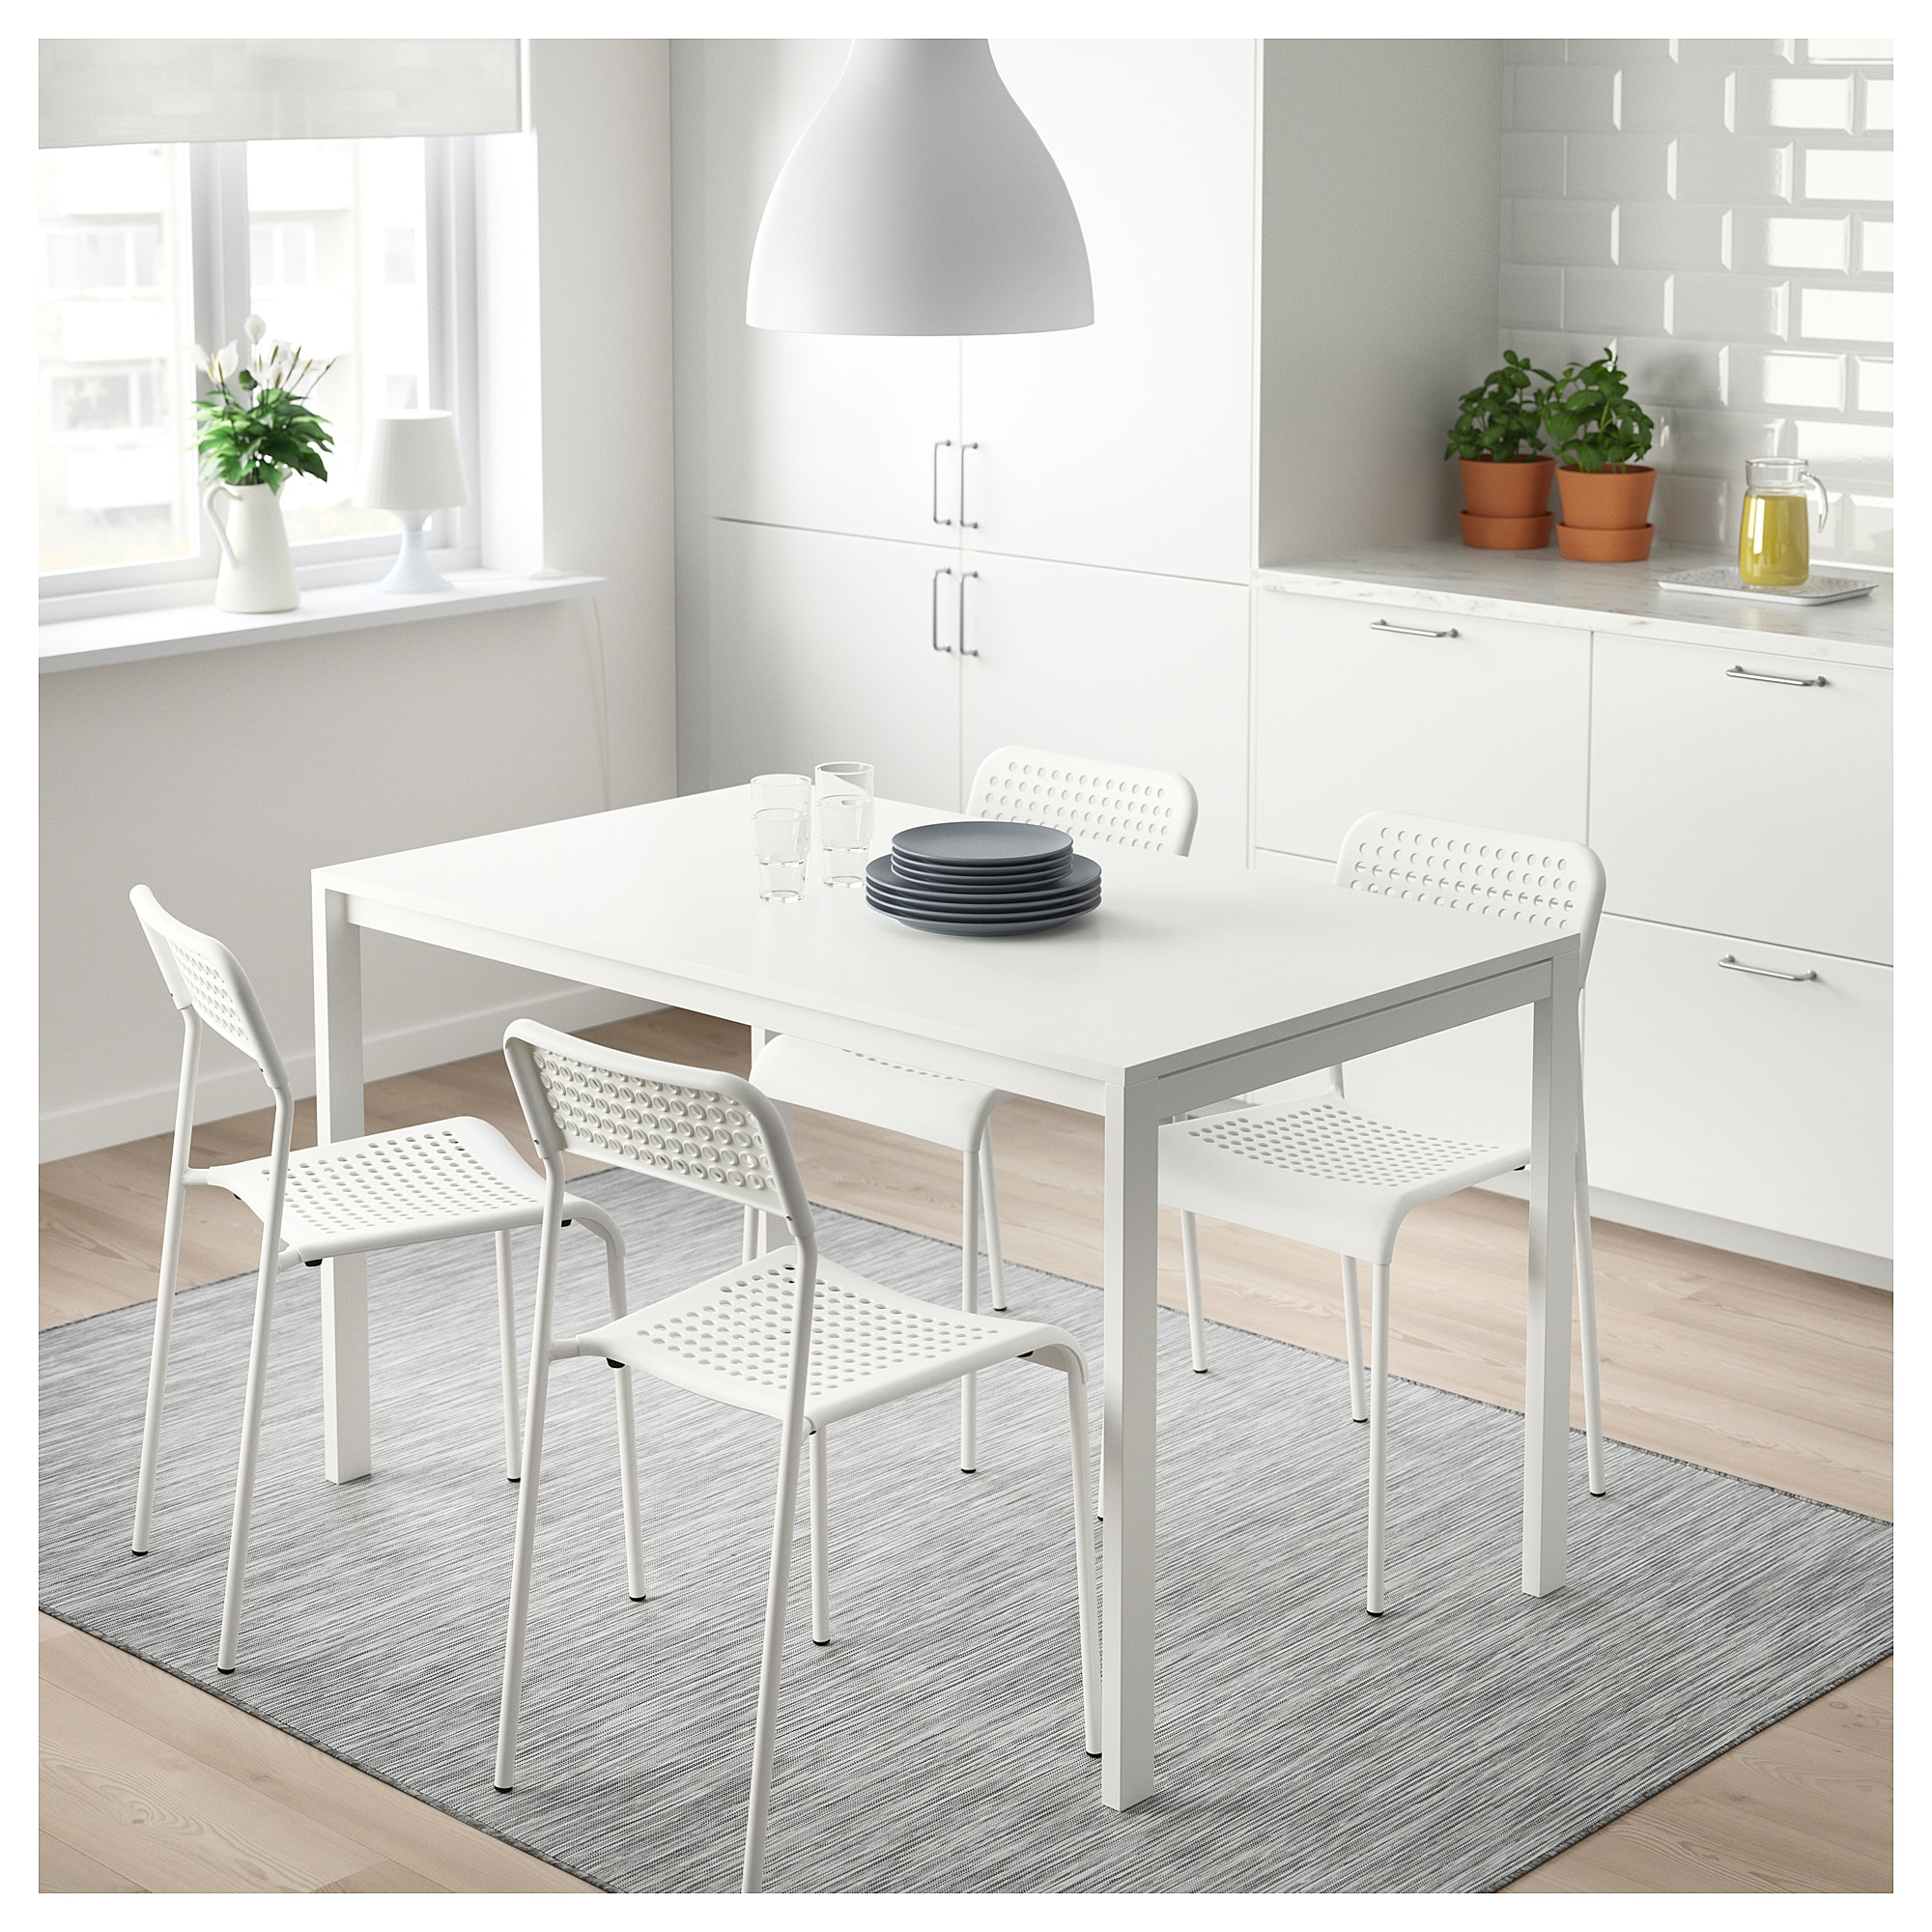 ADDE Chair white IKEA Small dining table, Dining